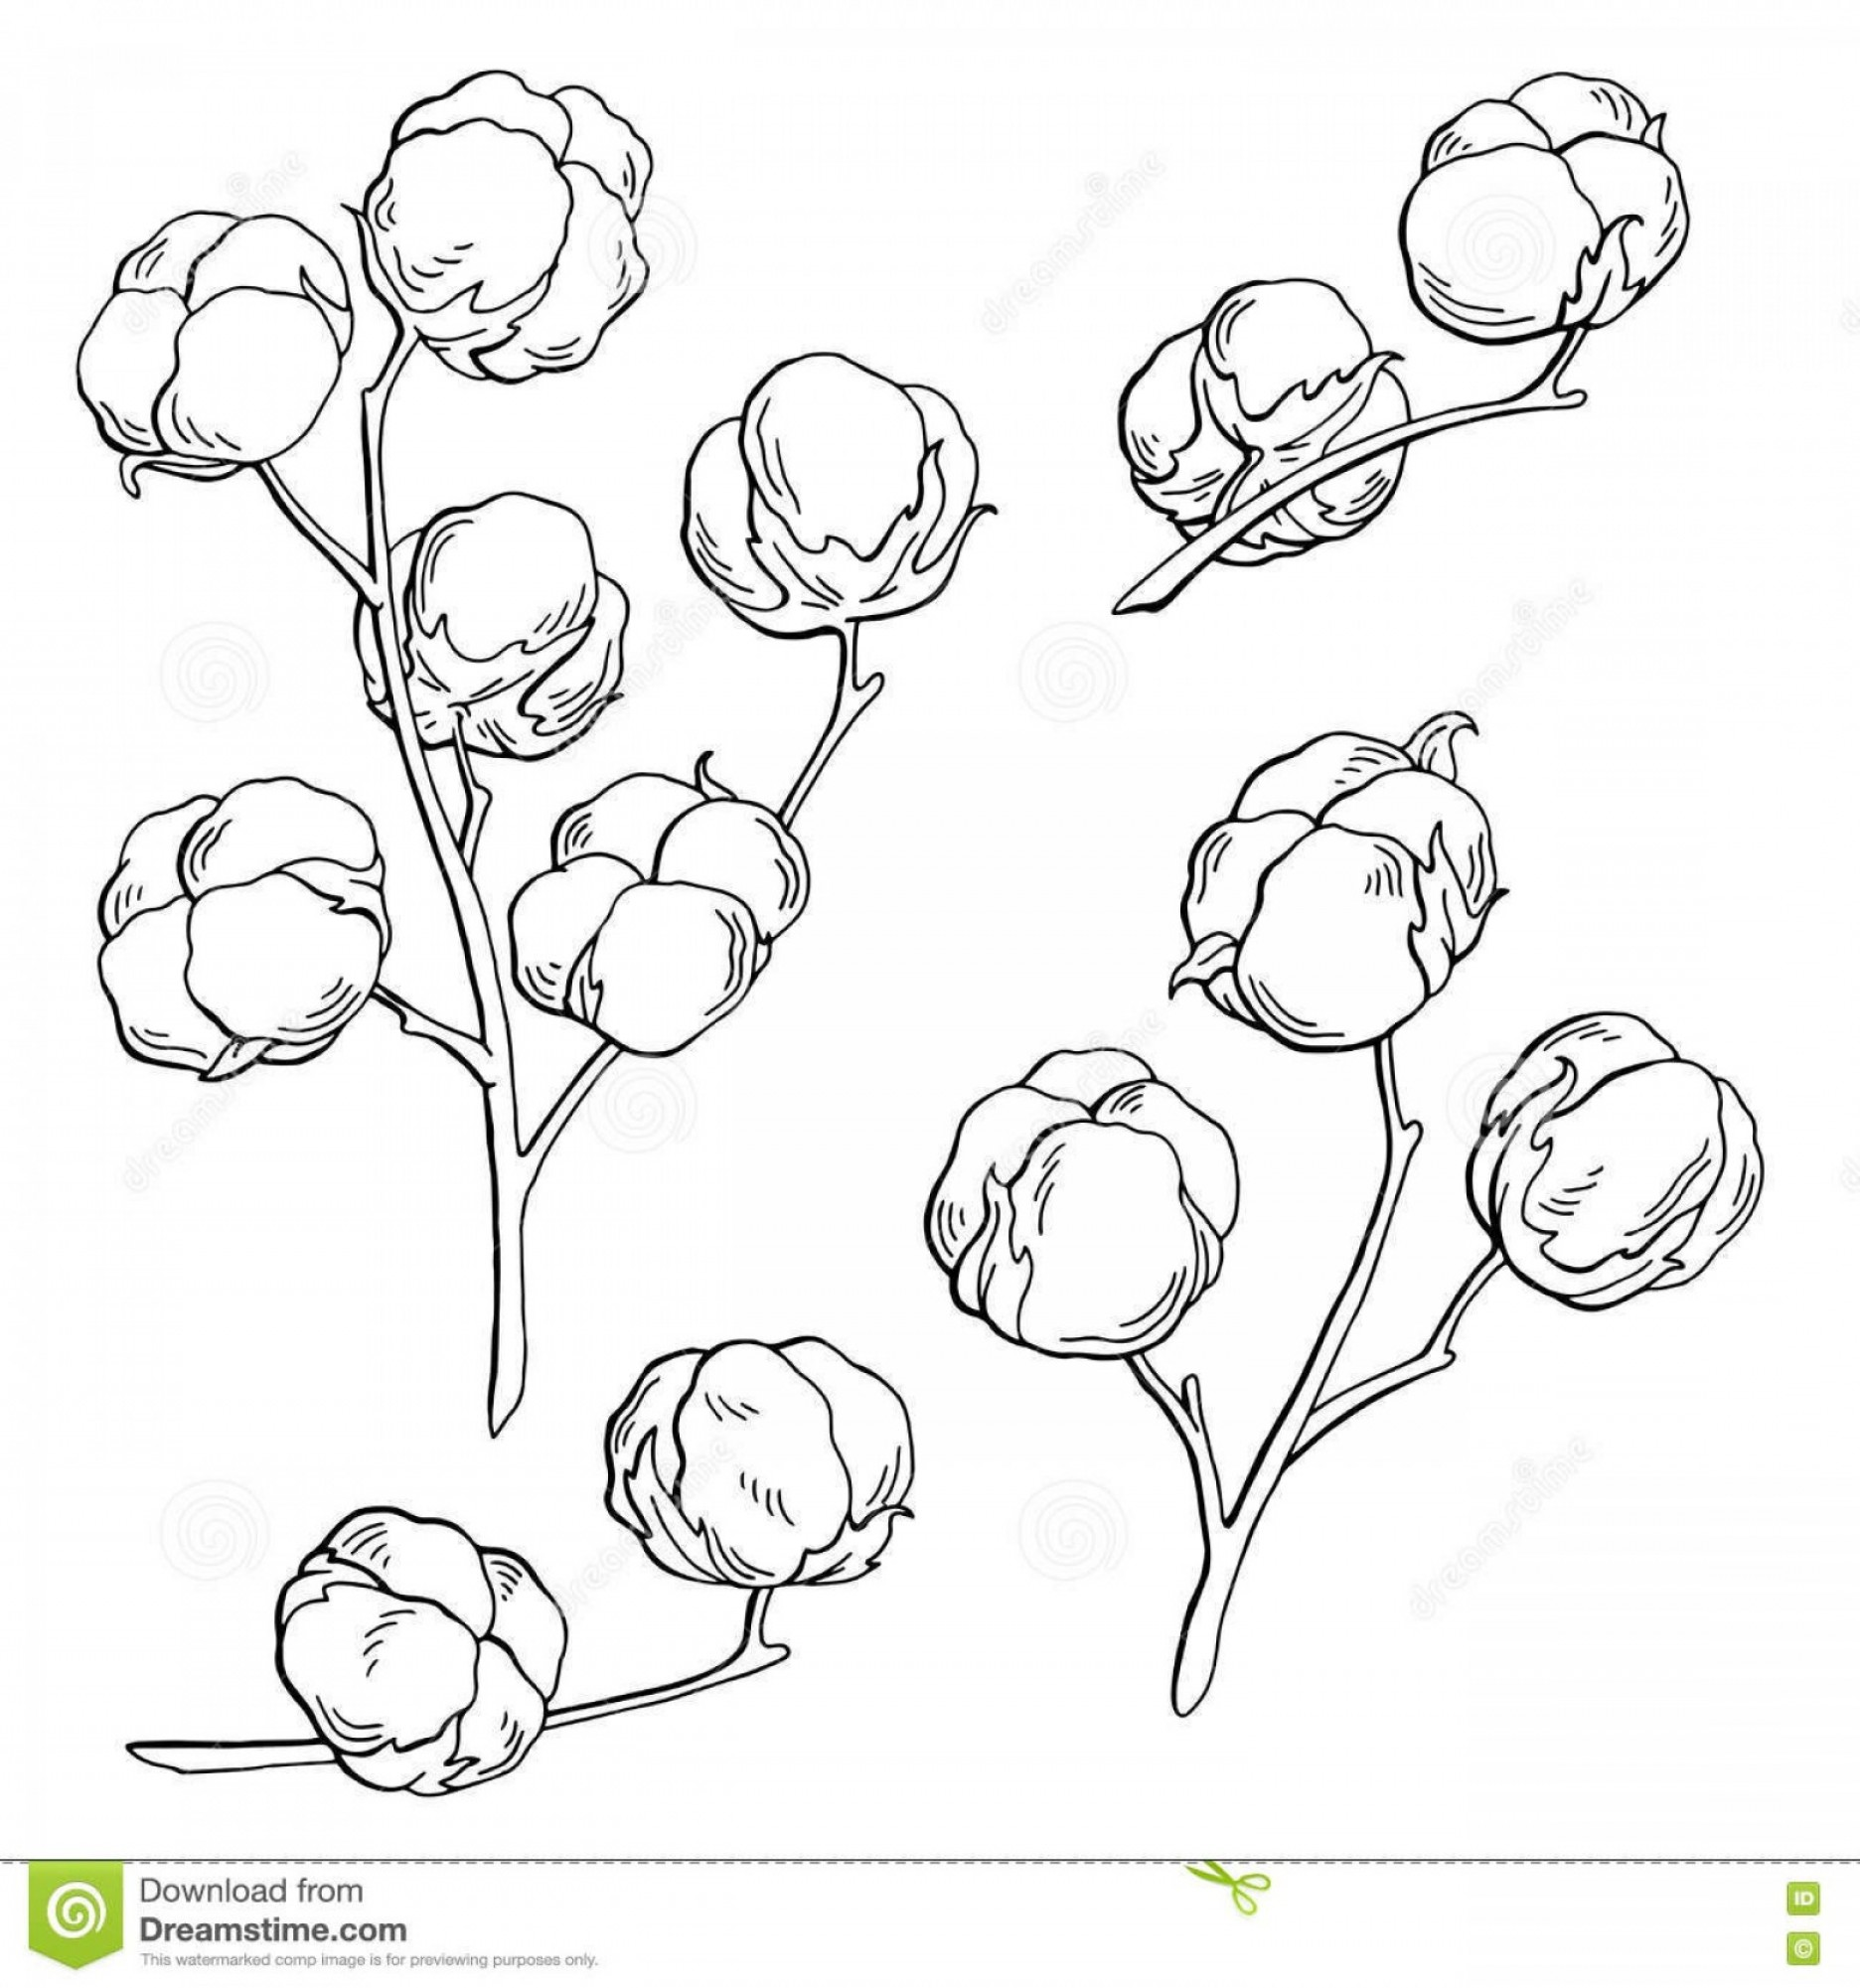 Cotton Vector Graphic: Stock Illustration Cotton Plant Graphic Black White Isolated Sketch Illustration Vector Image